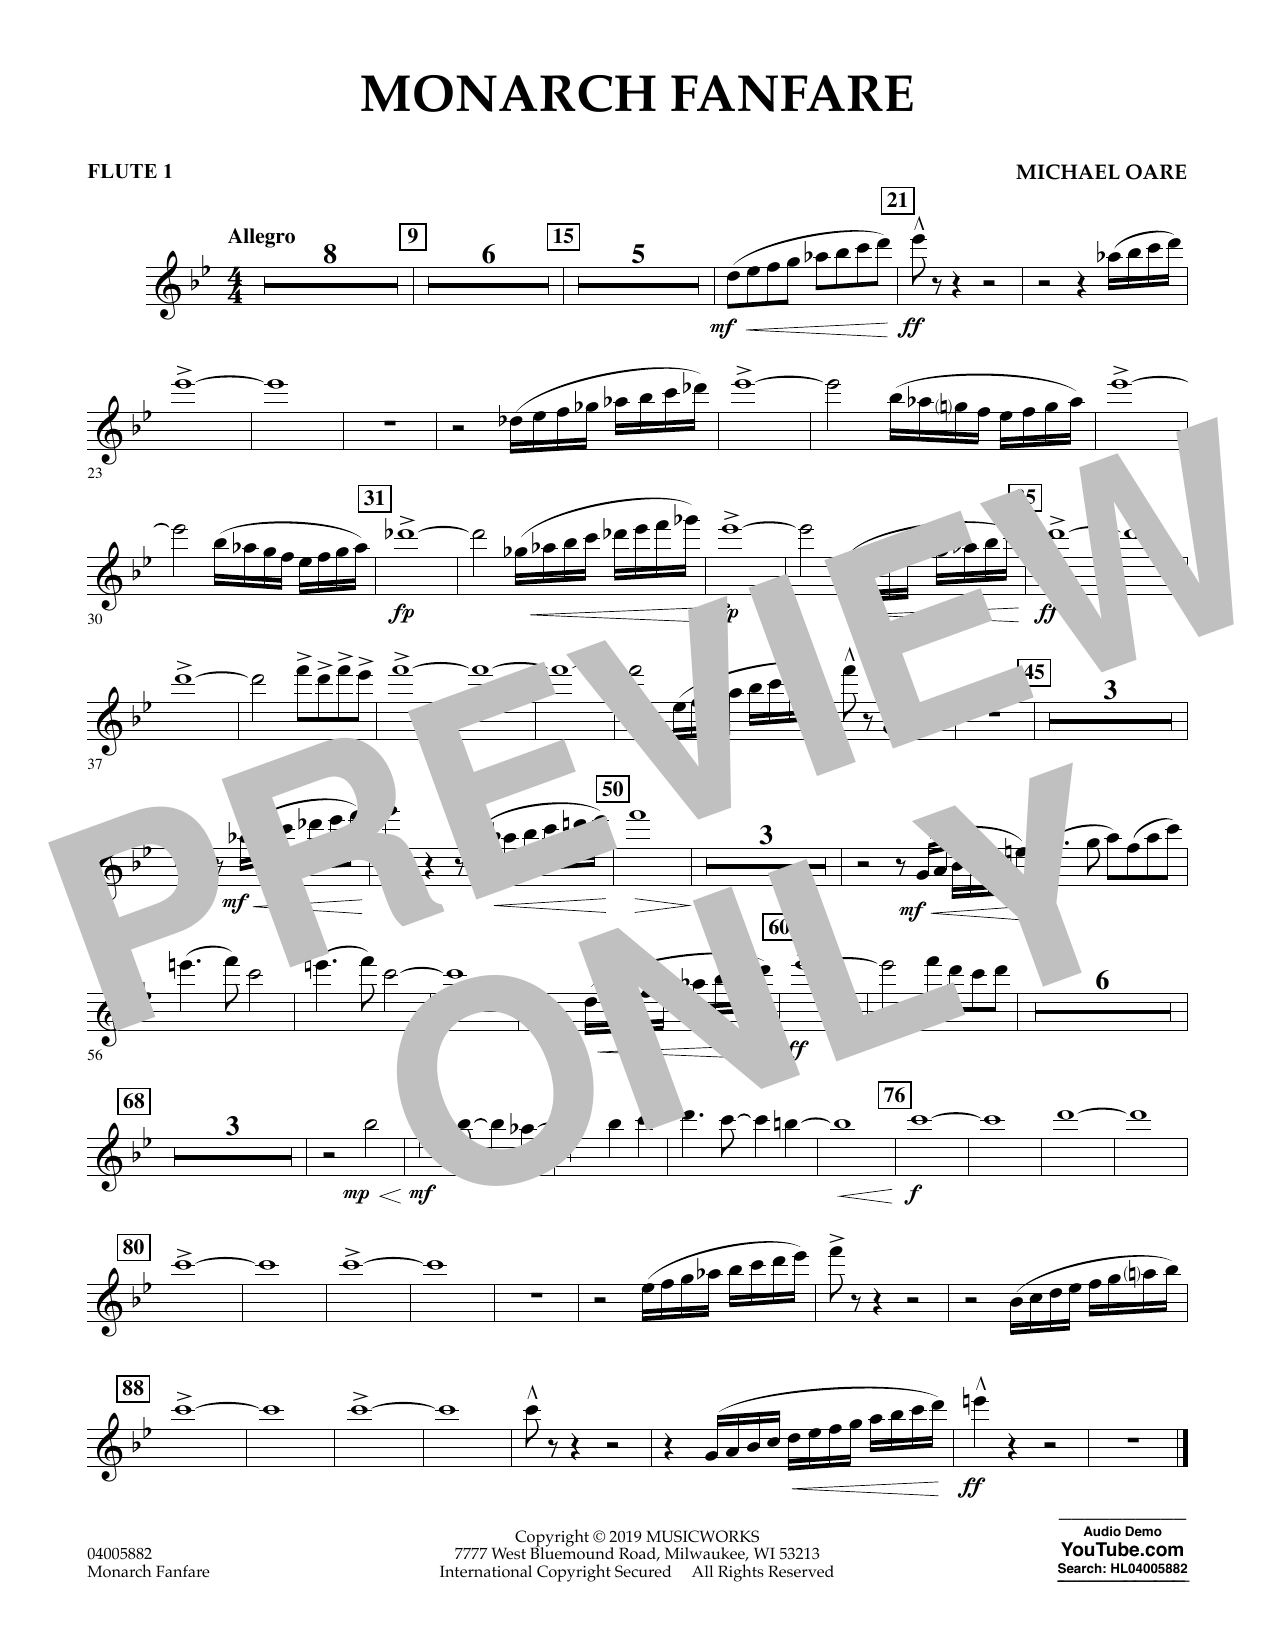 Michael Oare Monarch Fanfare - Flute 1 sheet music preview music notes and score for Concert Band including 1 page(s)